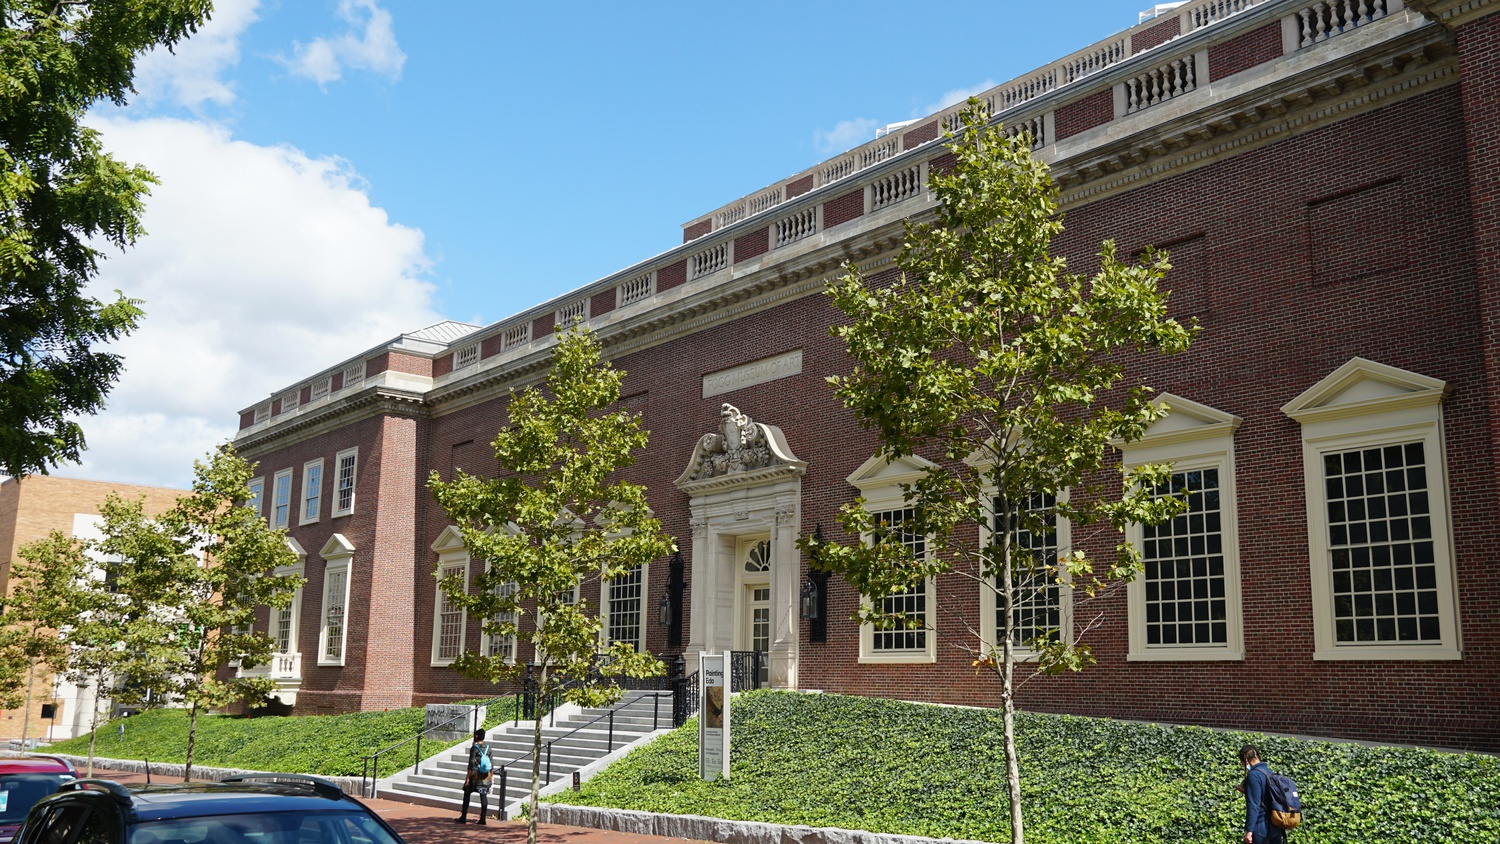 The Harvard Art Museums, comprised of the the Fogg, Busch-Reisinger, and Arthur M. Sackler Museums, are located on Quincy Street, right across from Harvard Yard.